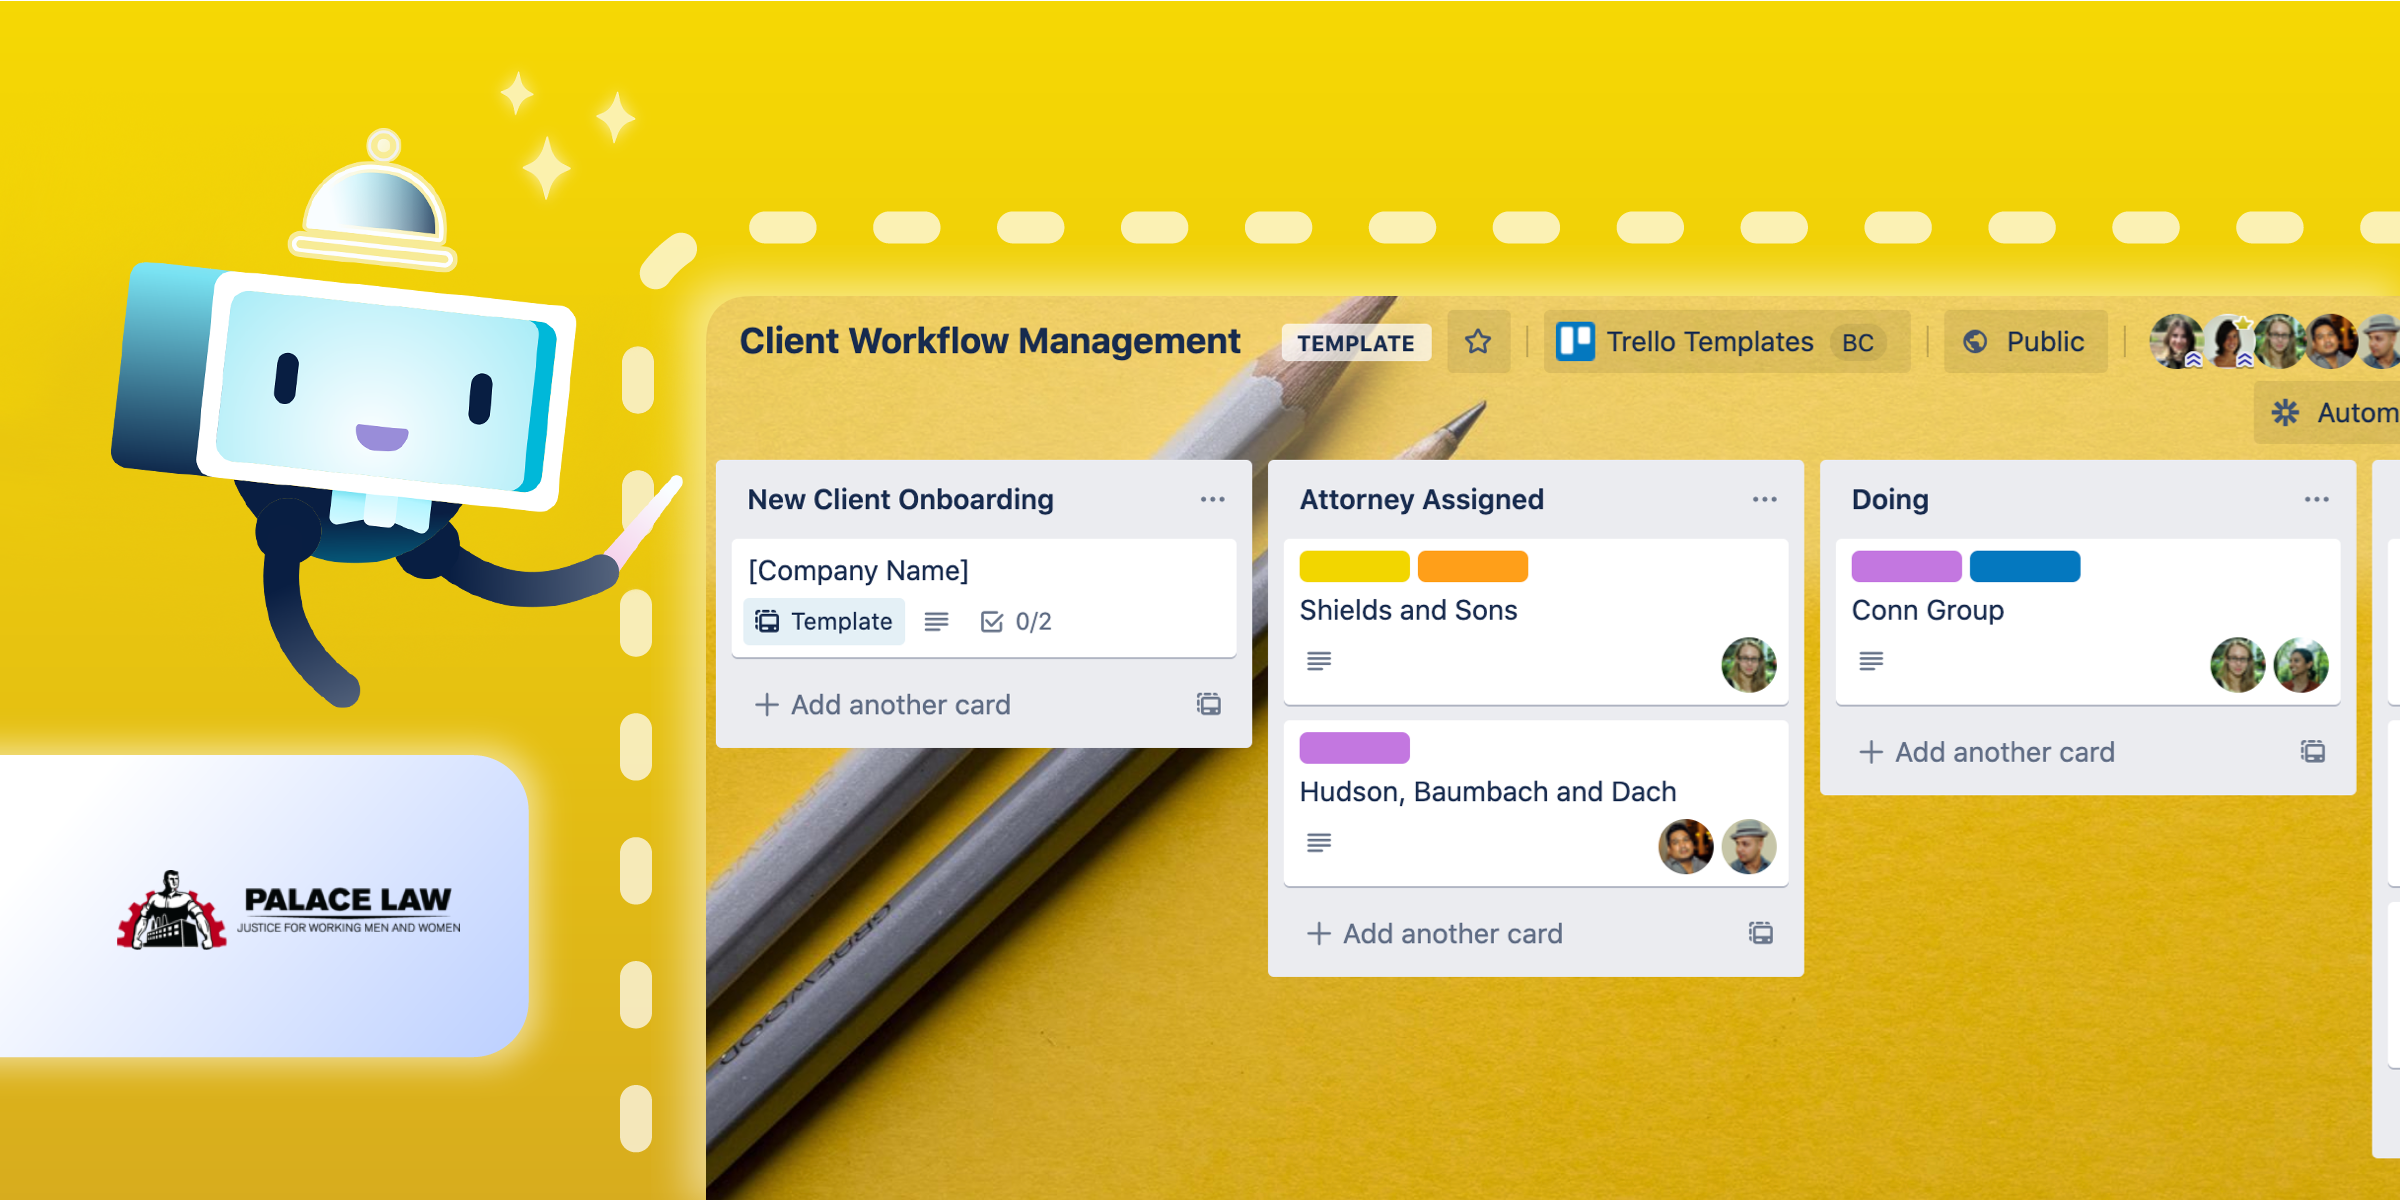 How To Manage Client Workflows With Trello